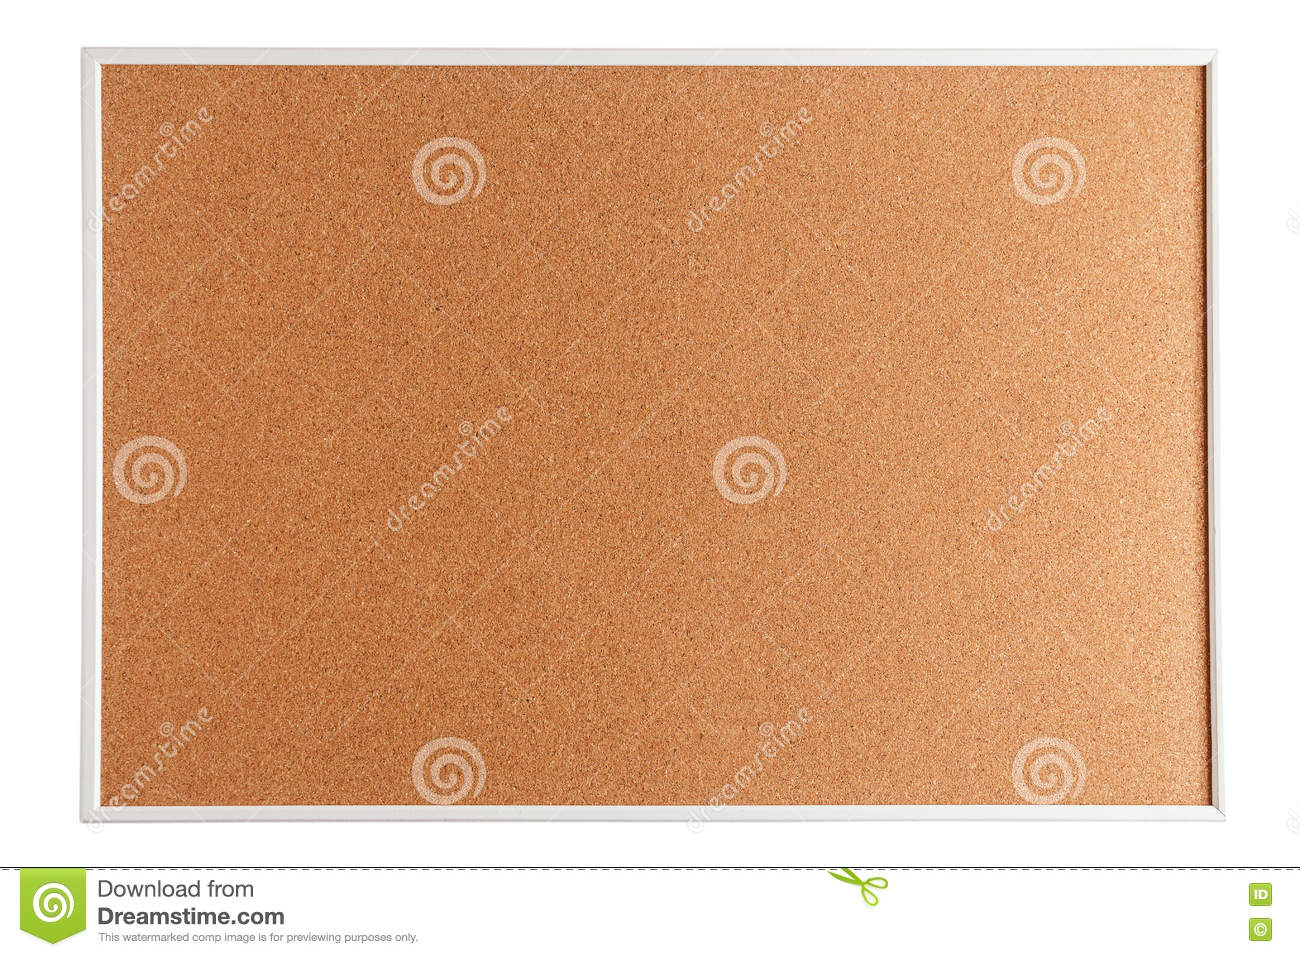 Cork board isolated on white